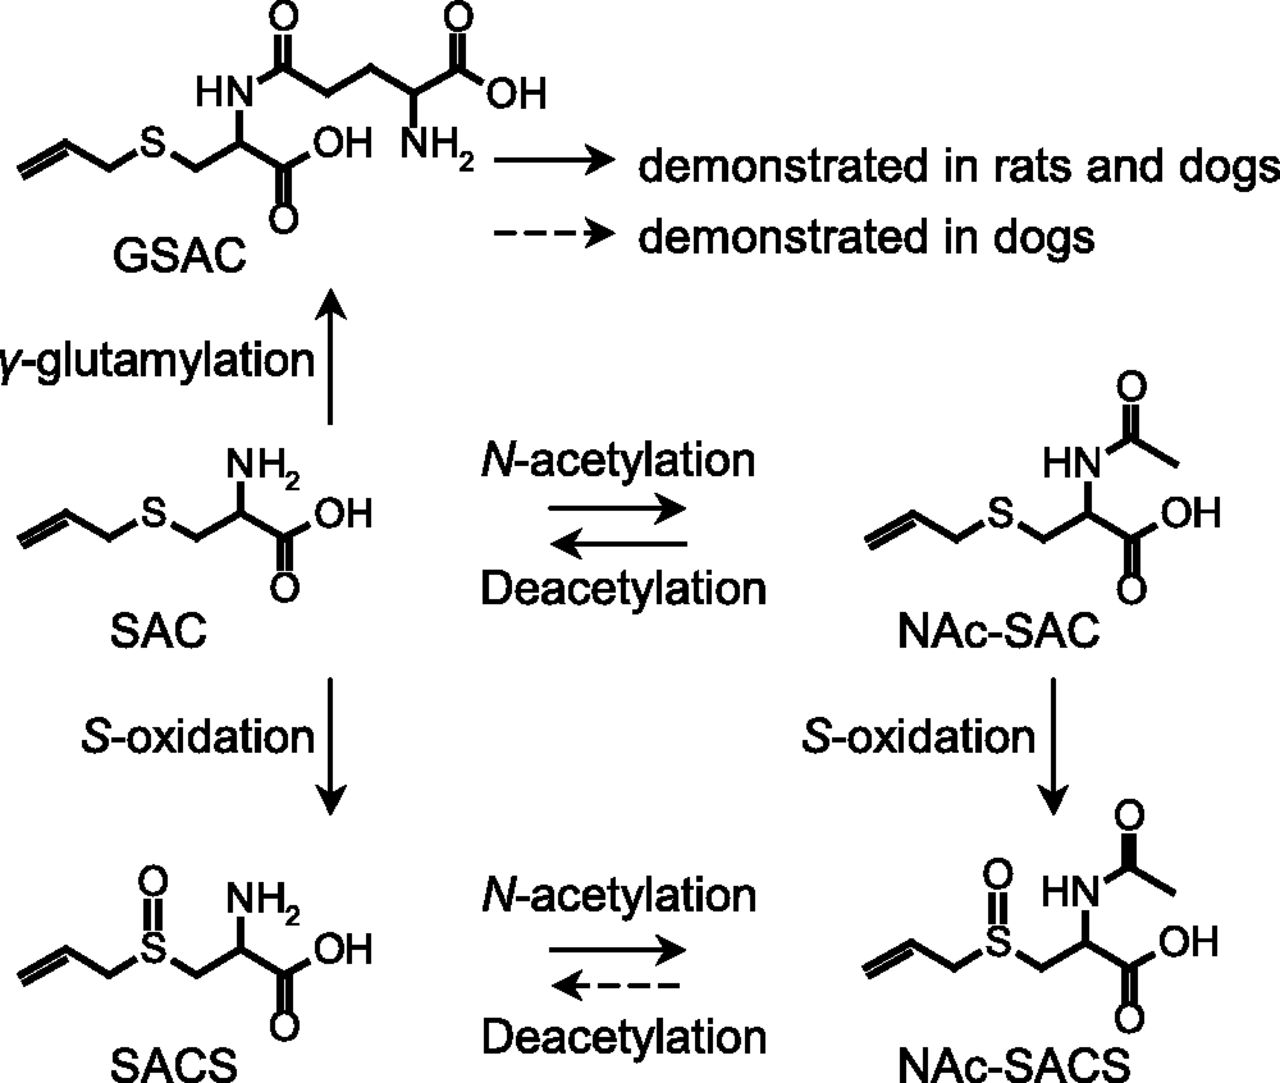 Metabolism, Excretion, and Pharmacokinetics of S-Allyl-l-Cysteine in